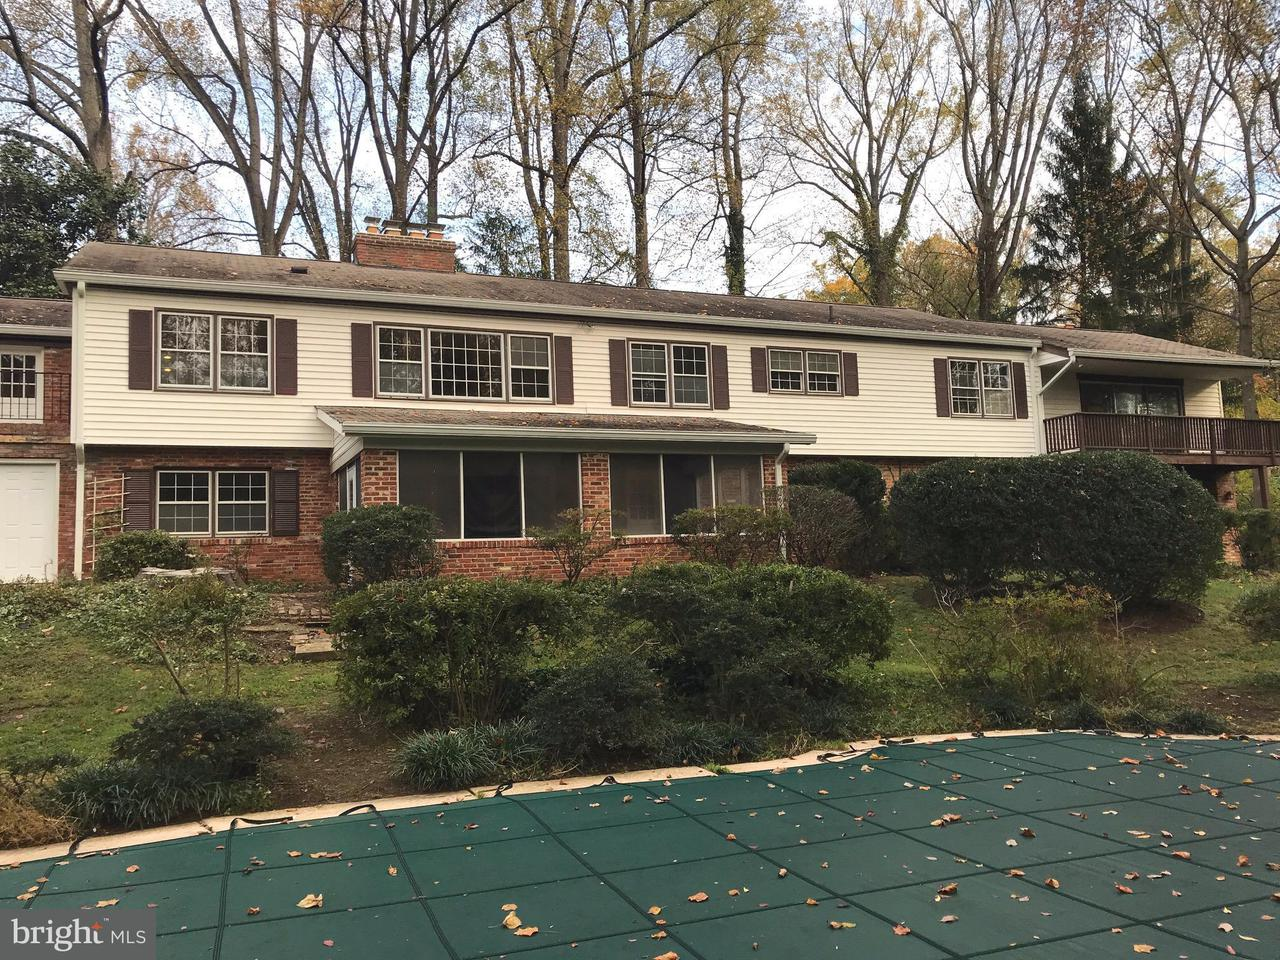 Single Family Home for Sale at 837 CENTRILLION Drive 837 CENTRILLION Drive McLean, Virginia 22102 United States